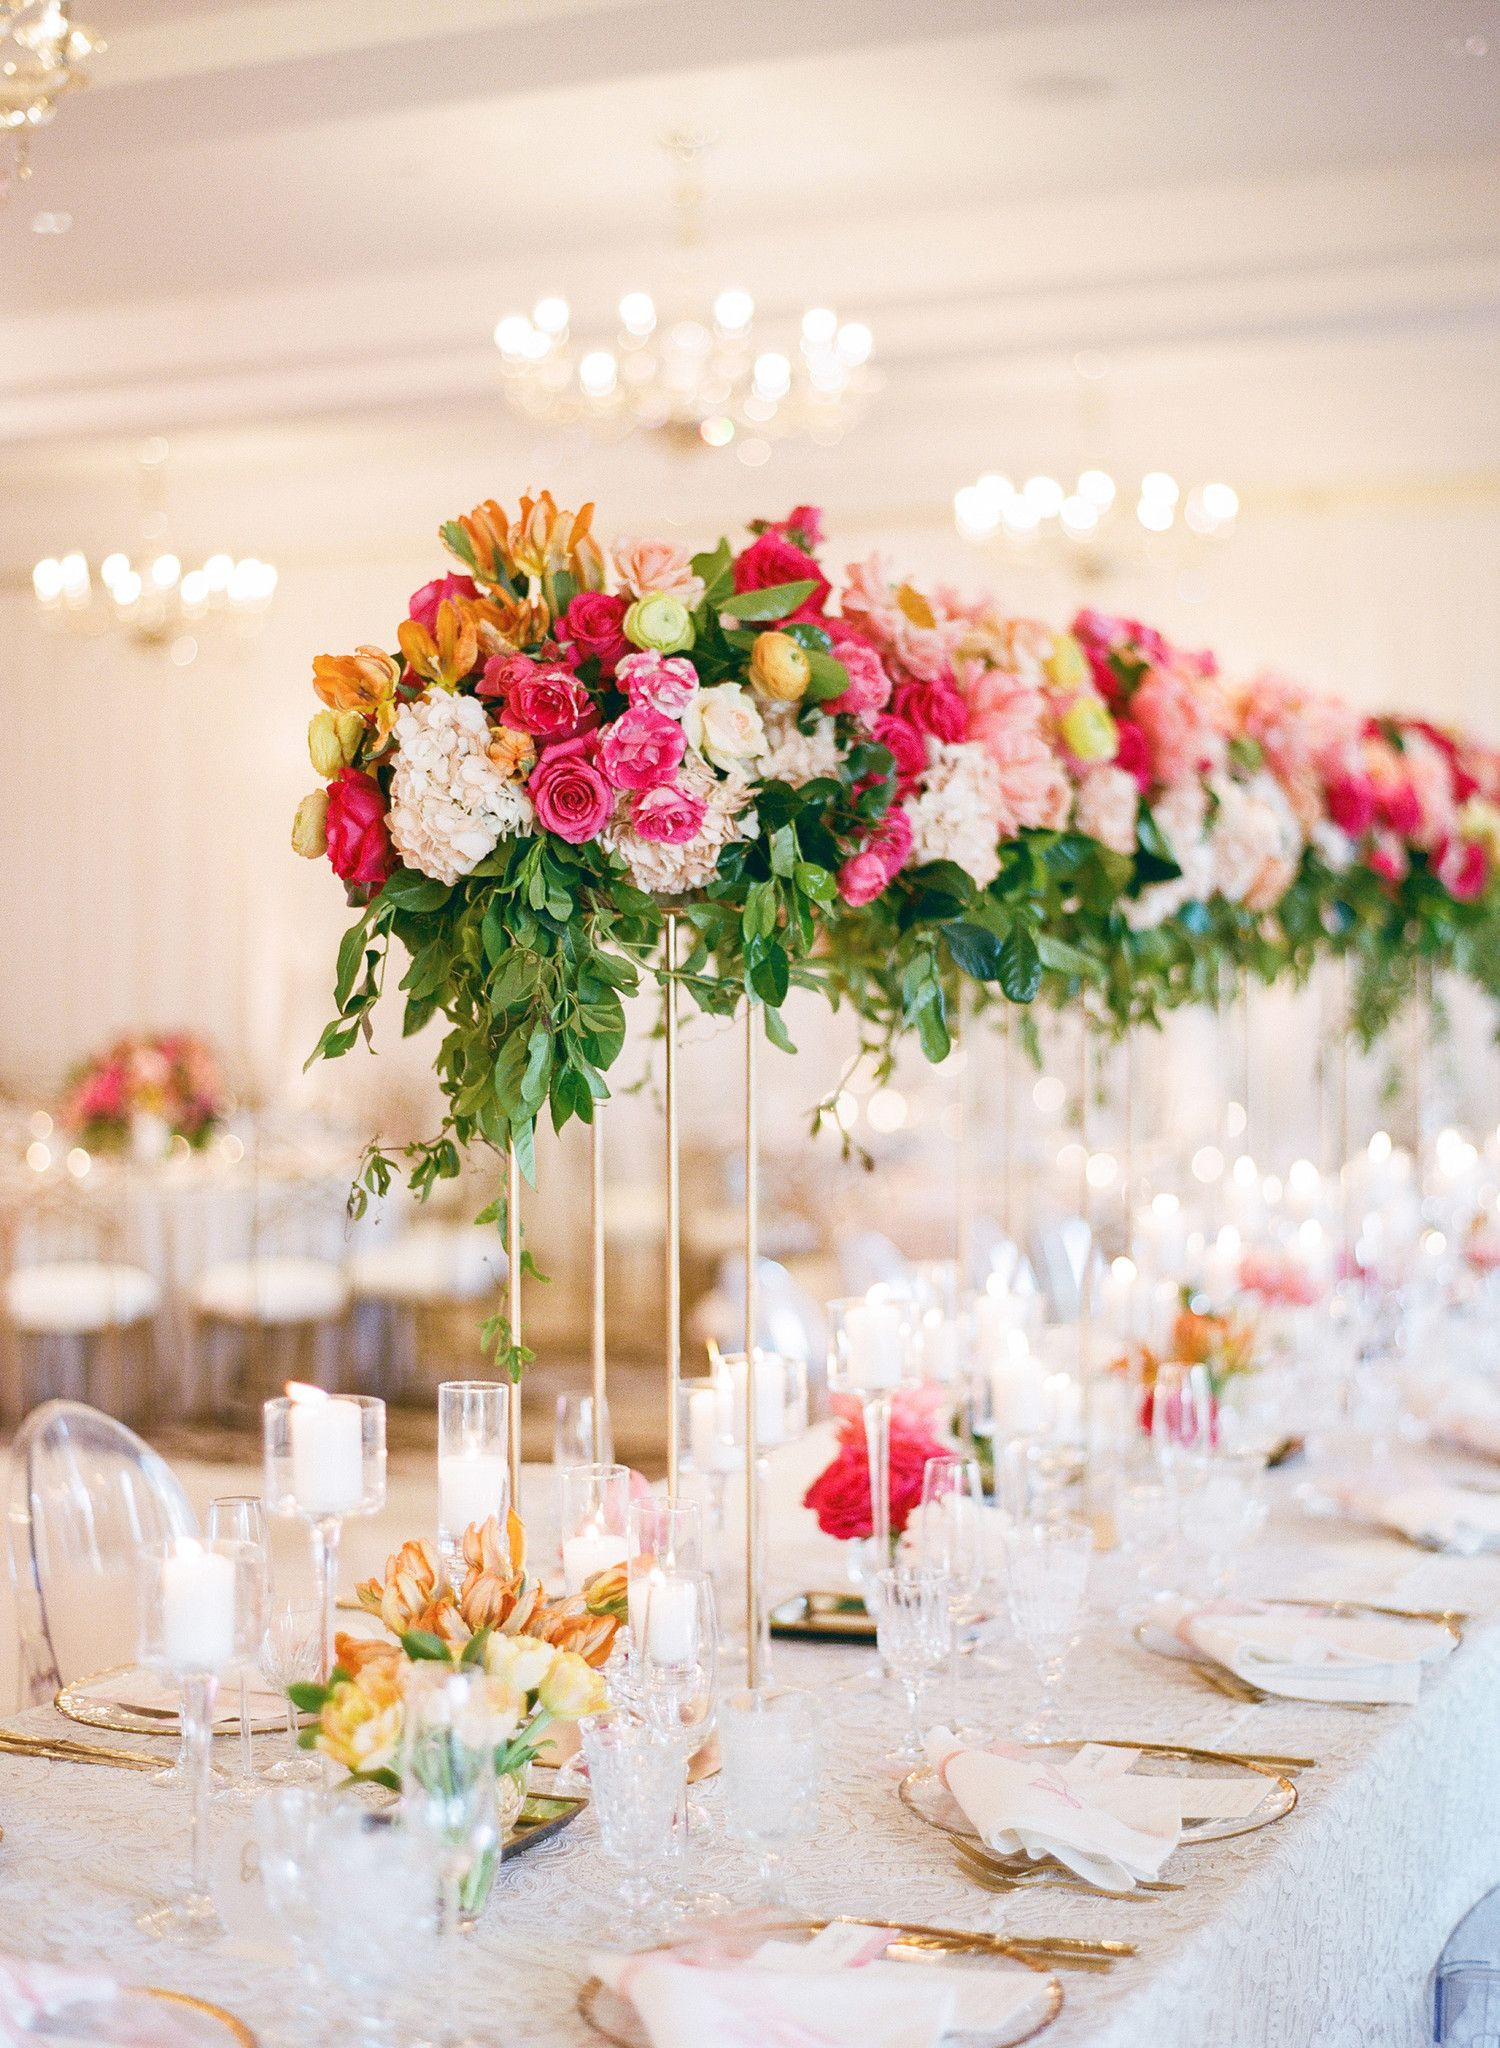 Take Your Floral Tabletop Arrangements To New Heights (Literally) By